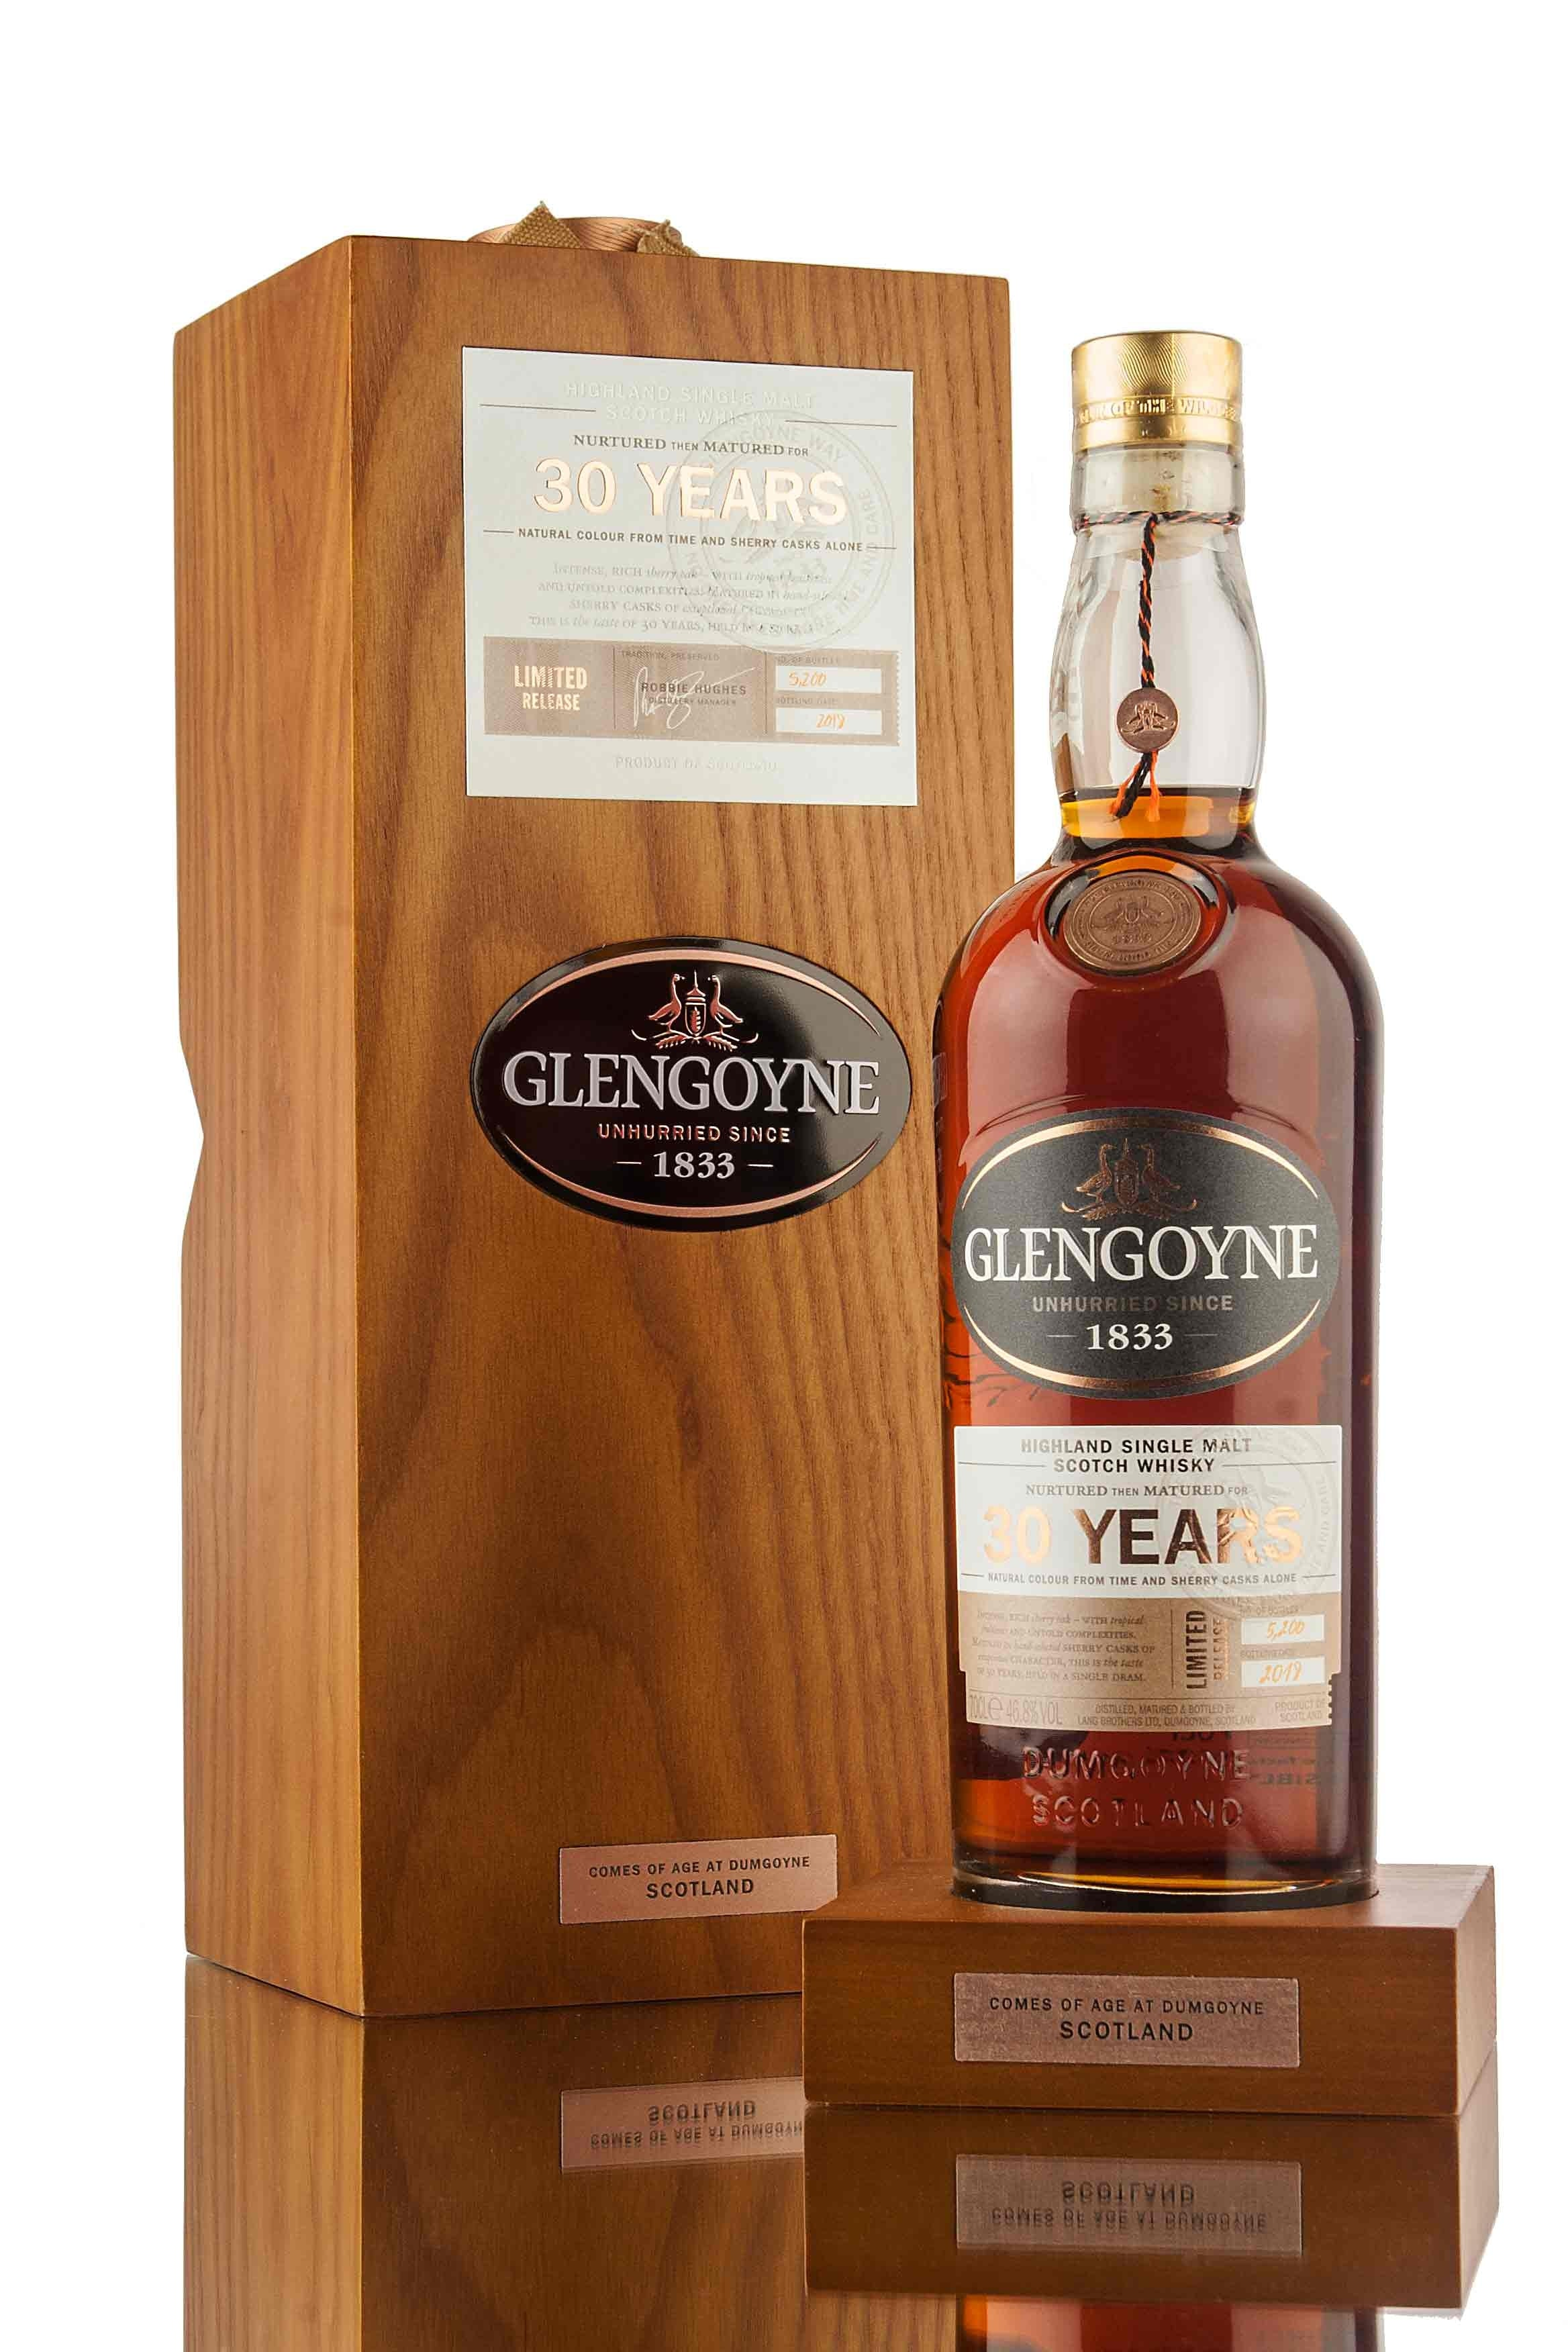 Glengoyne 30 Year Old | 2018 Release